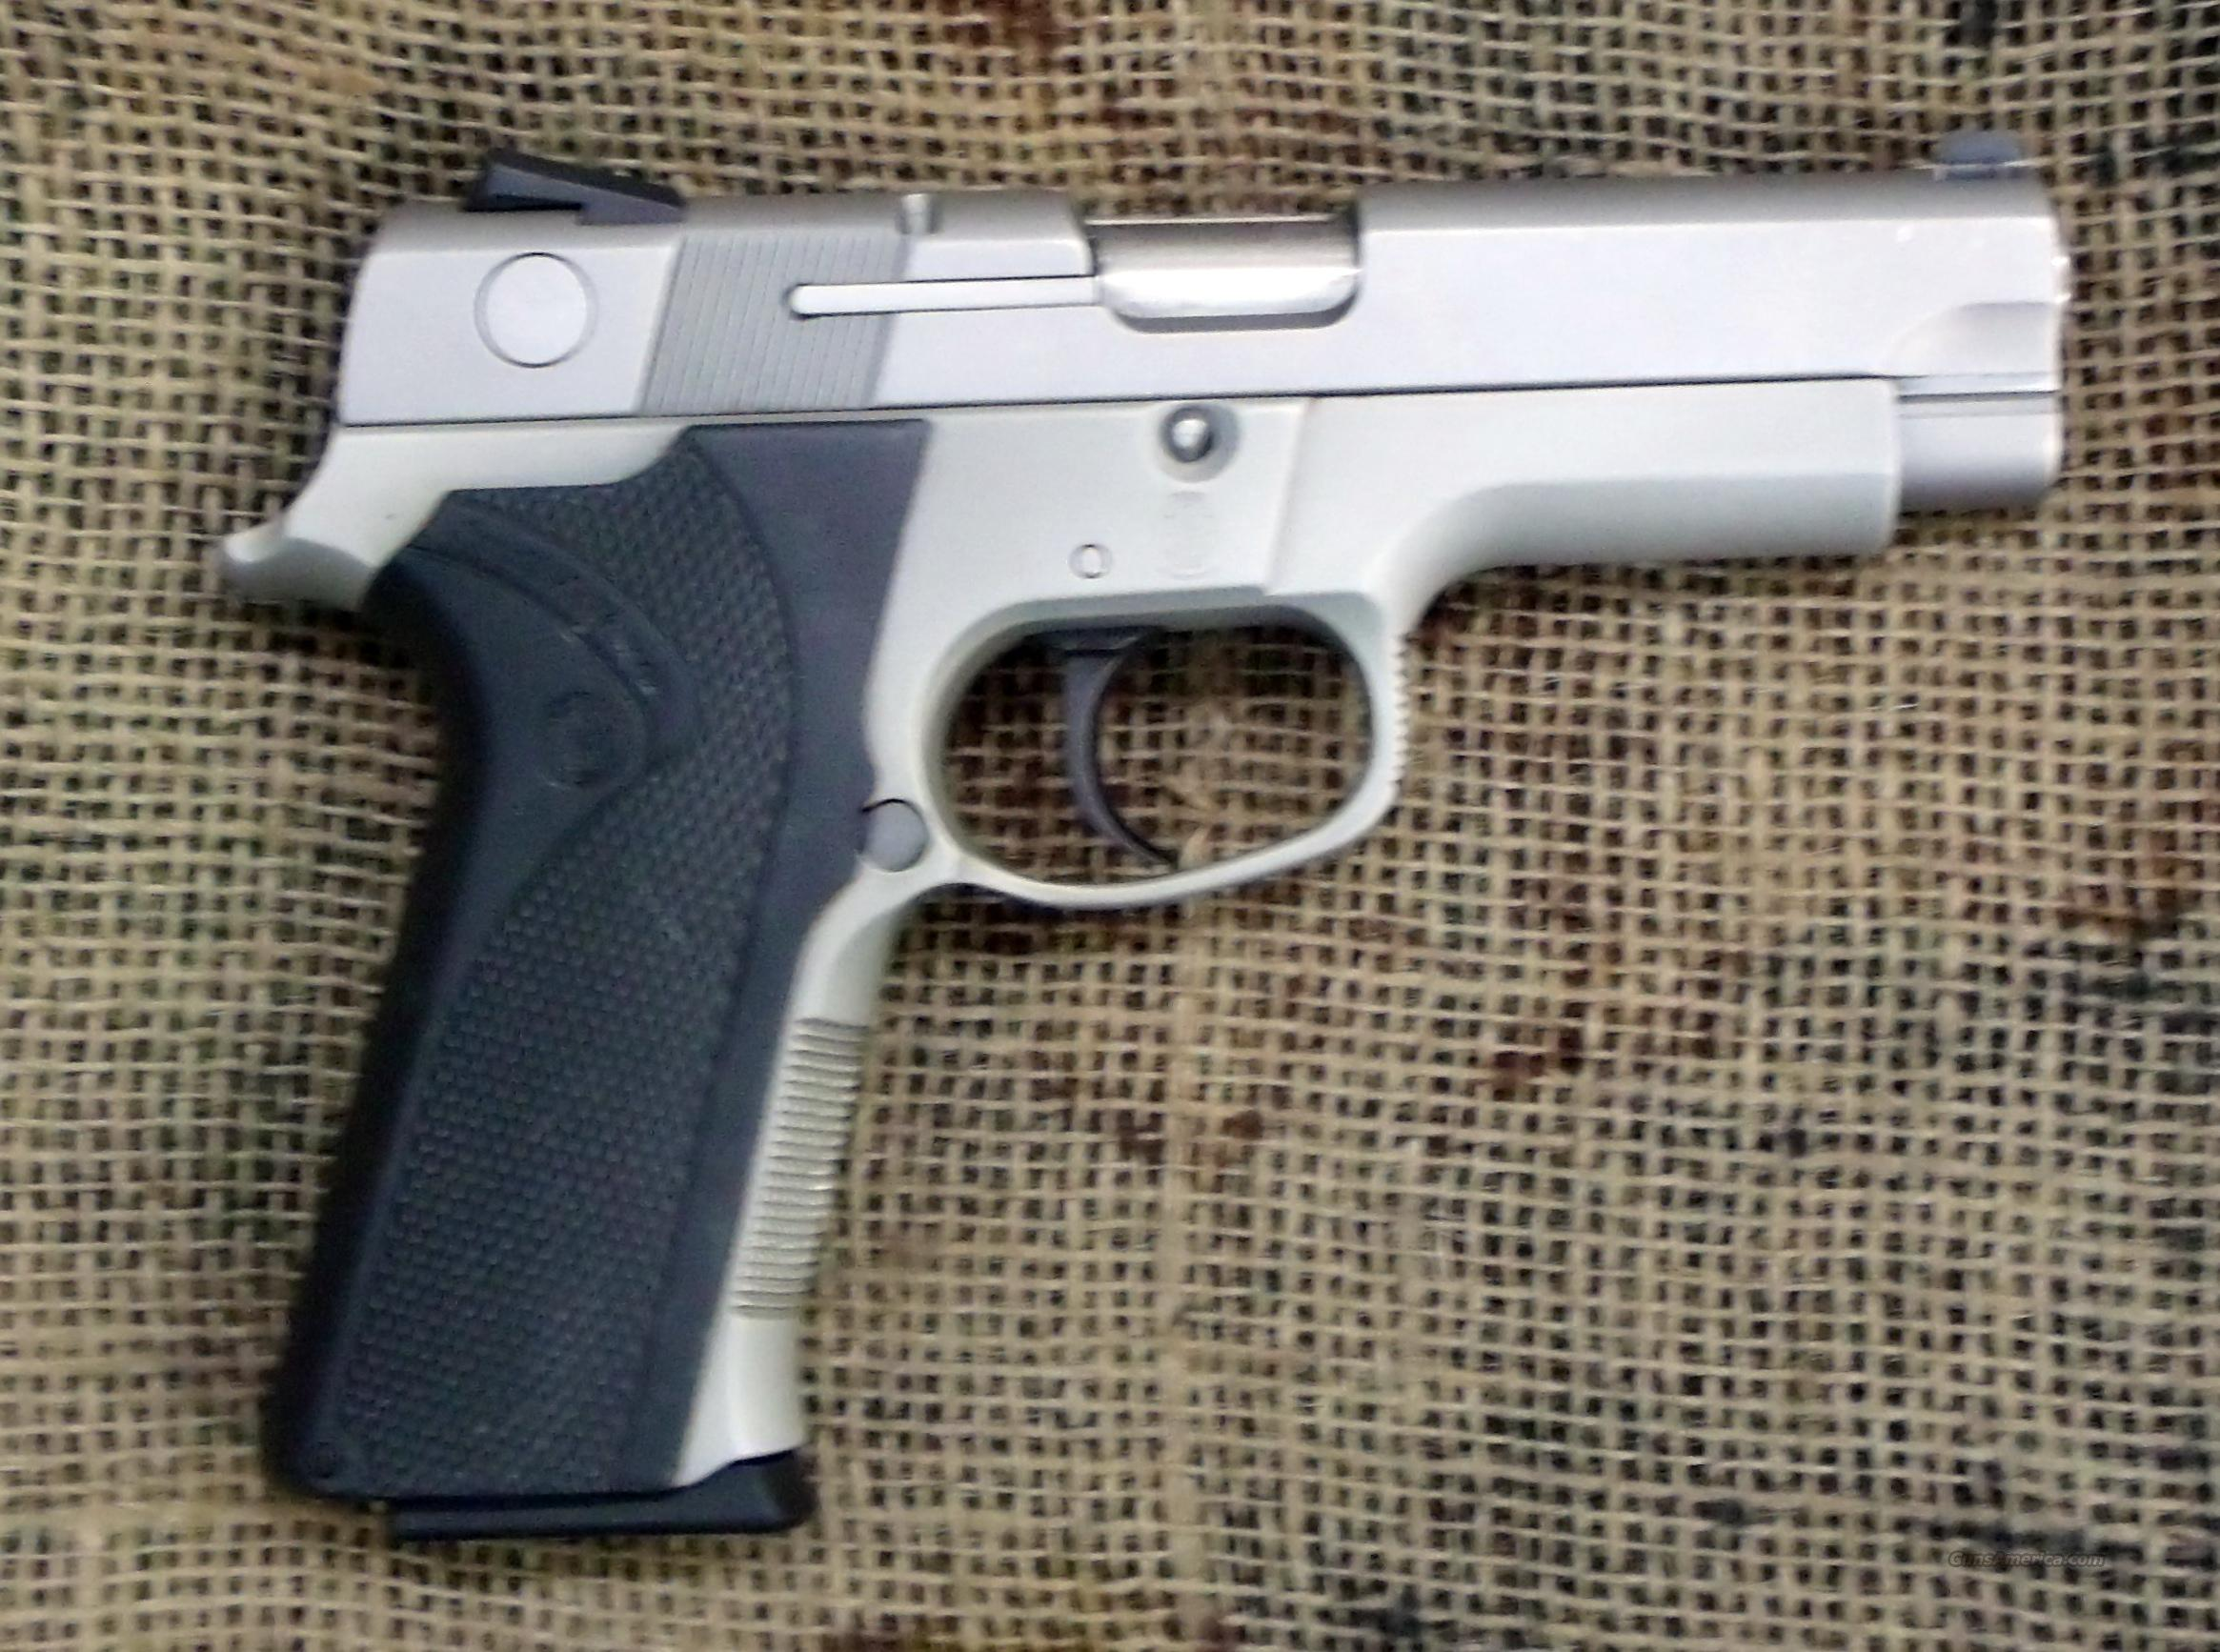 SMITH & WESSON Model 4043 DAO Pistol, 40S&W Cal